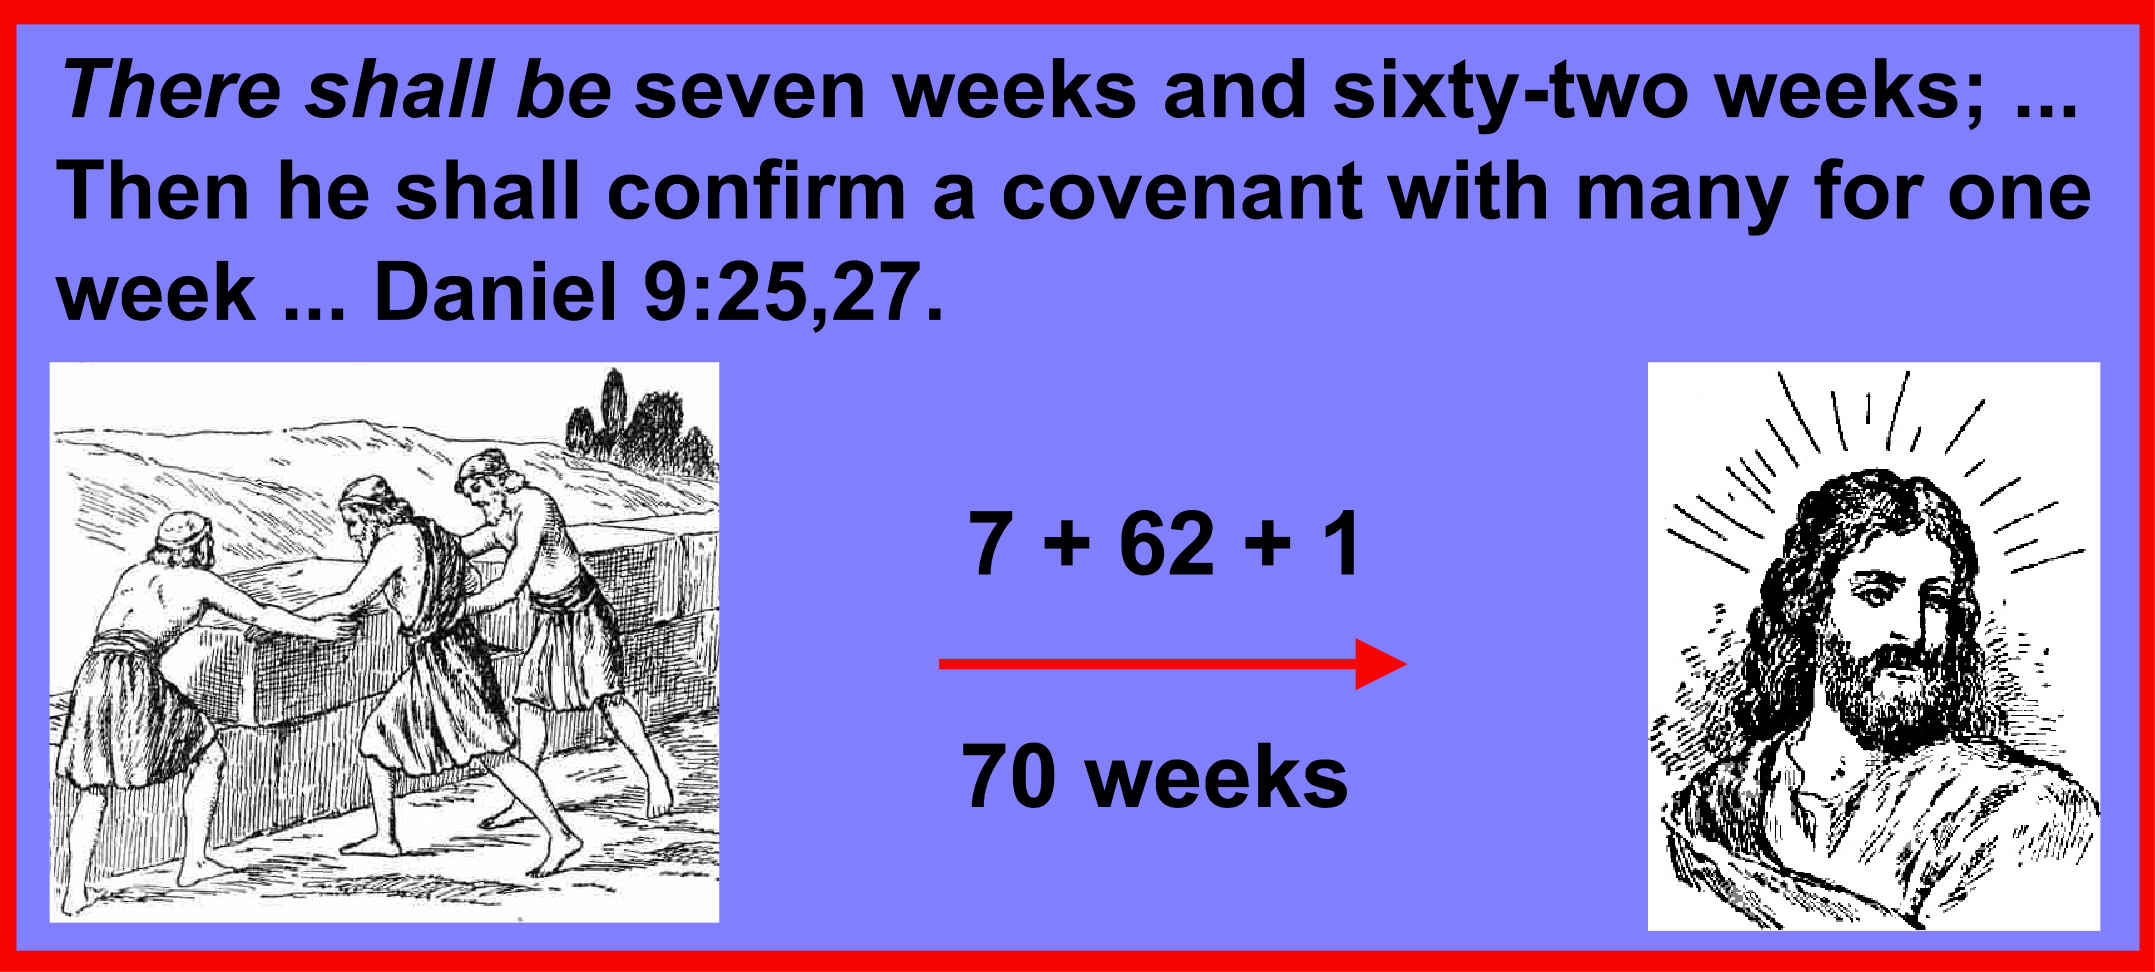 There shall be seven weeks and sixty-two weeks; ...  Then he shall confirm a covenant with many for one week . Daniel 9:25,27.